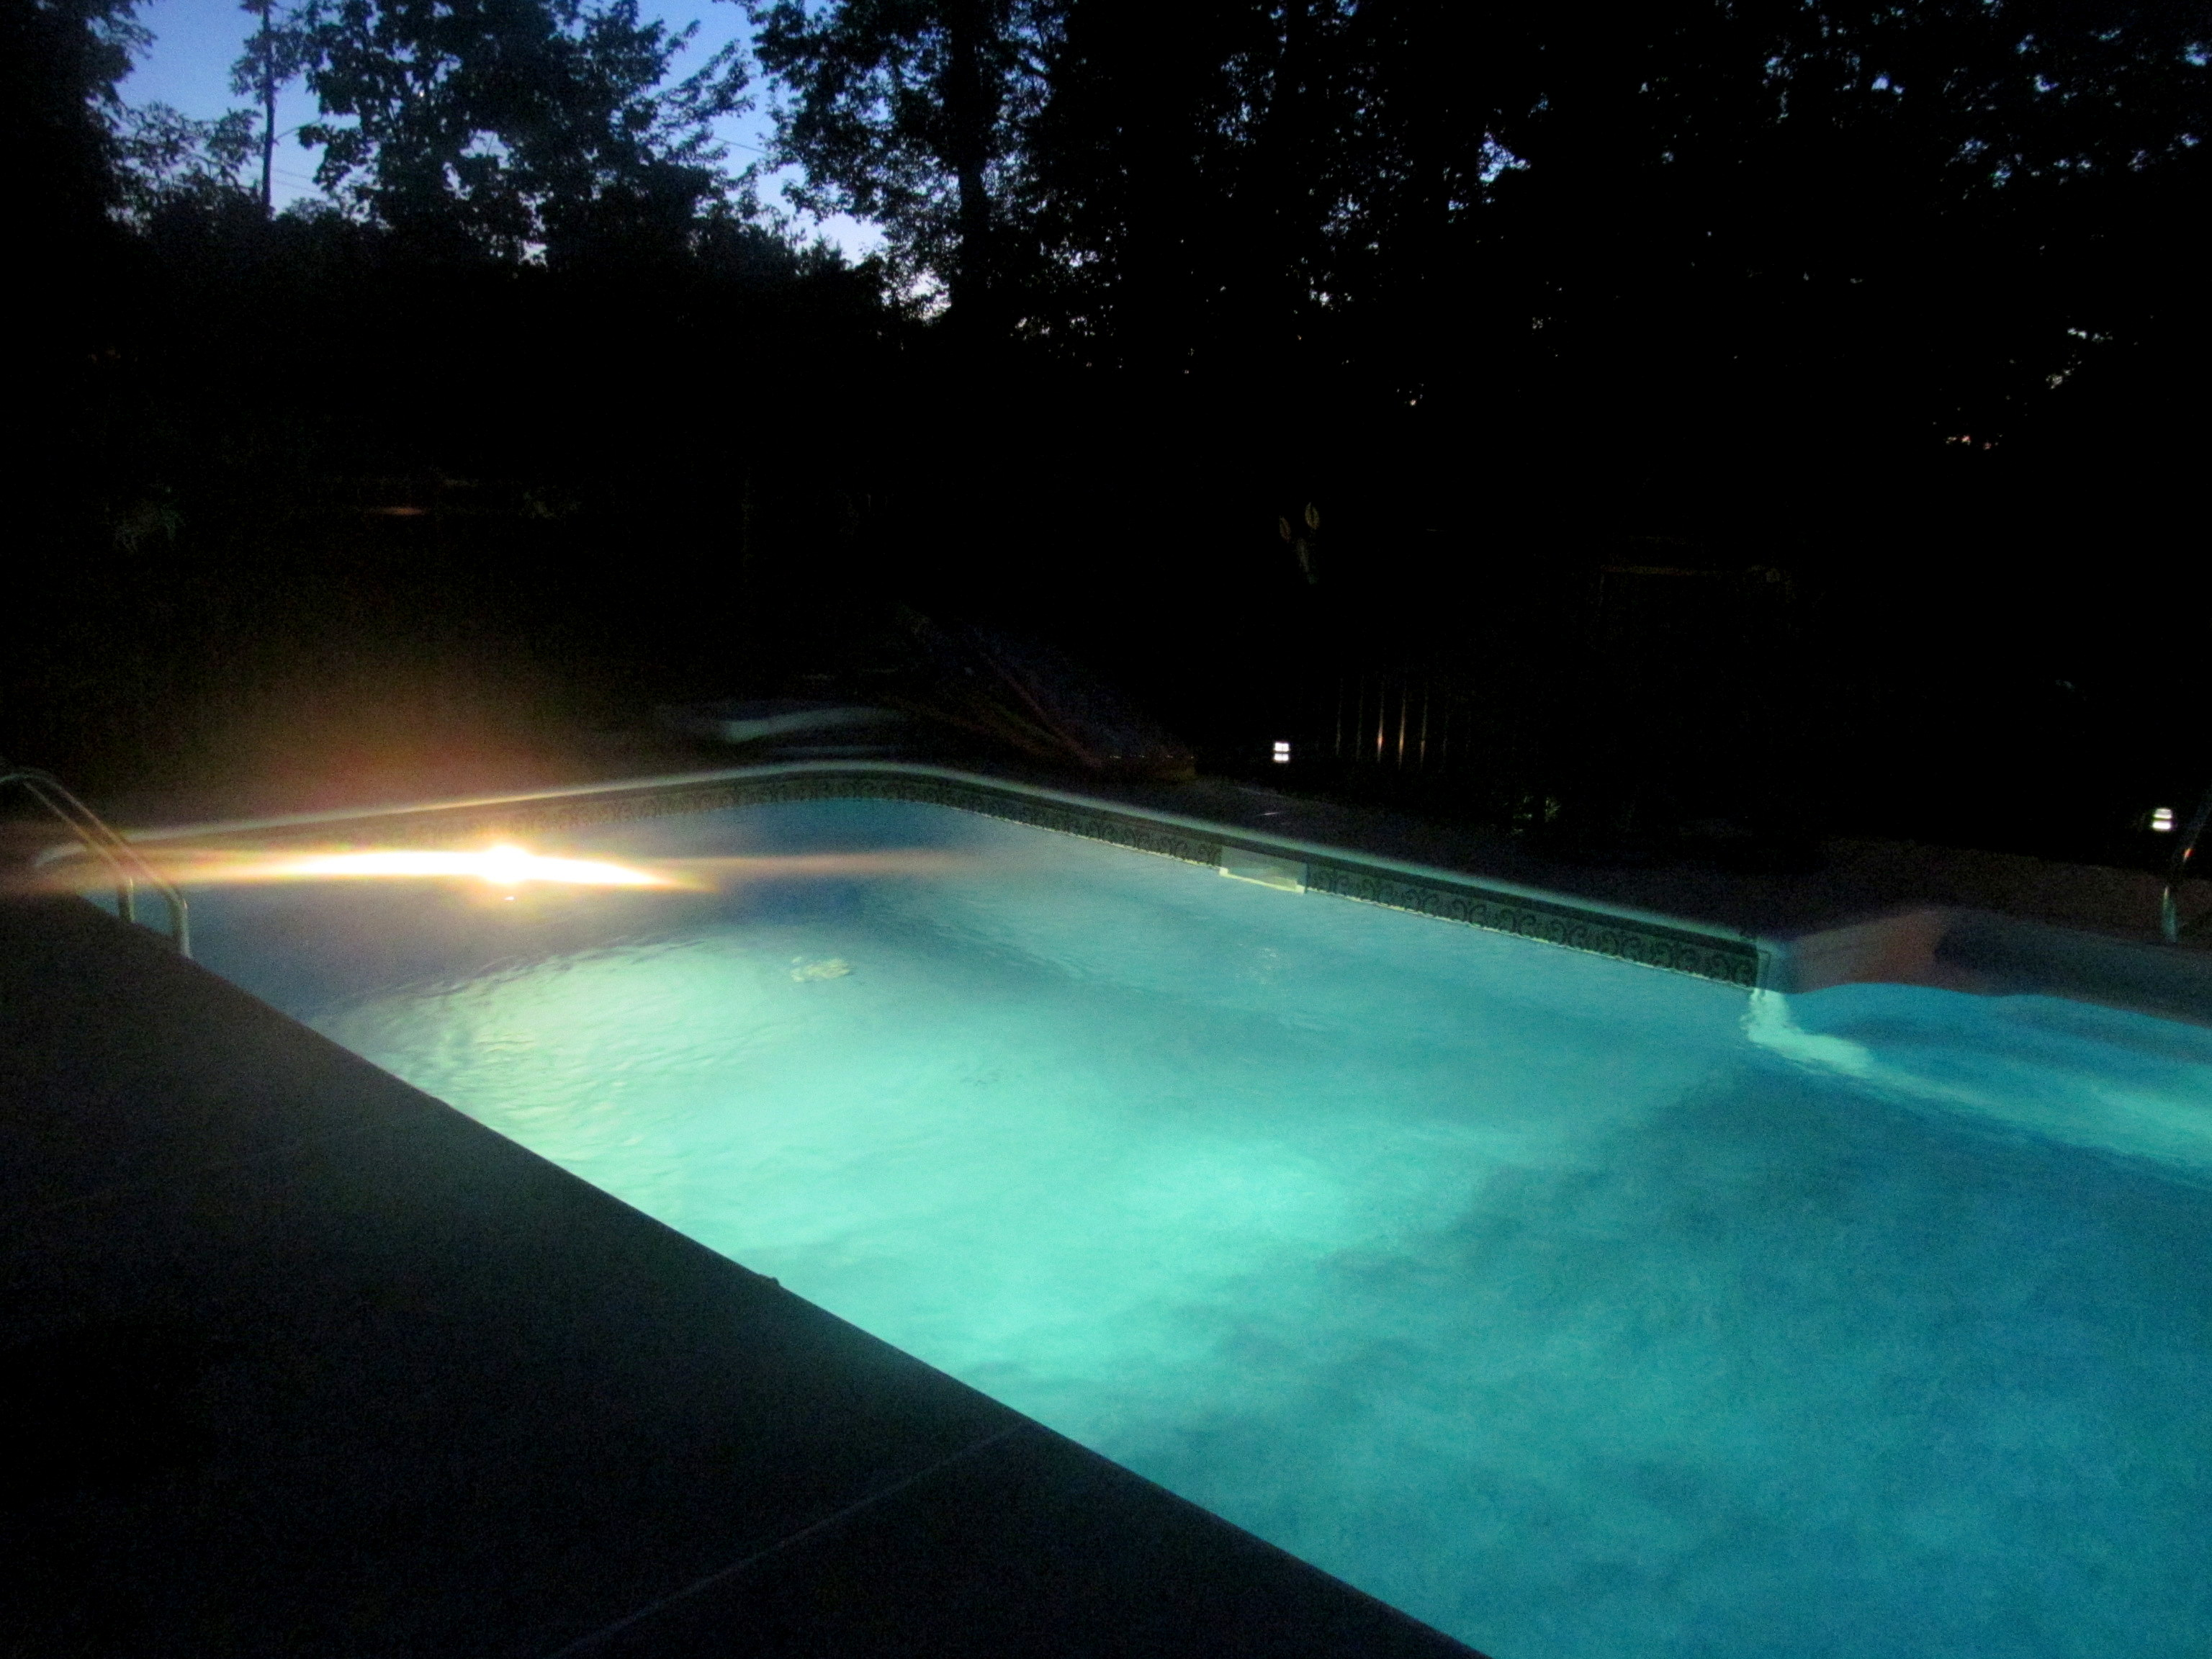 Love how the pool looked when lit up at night!